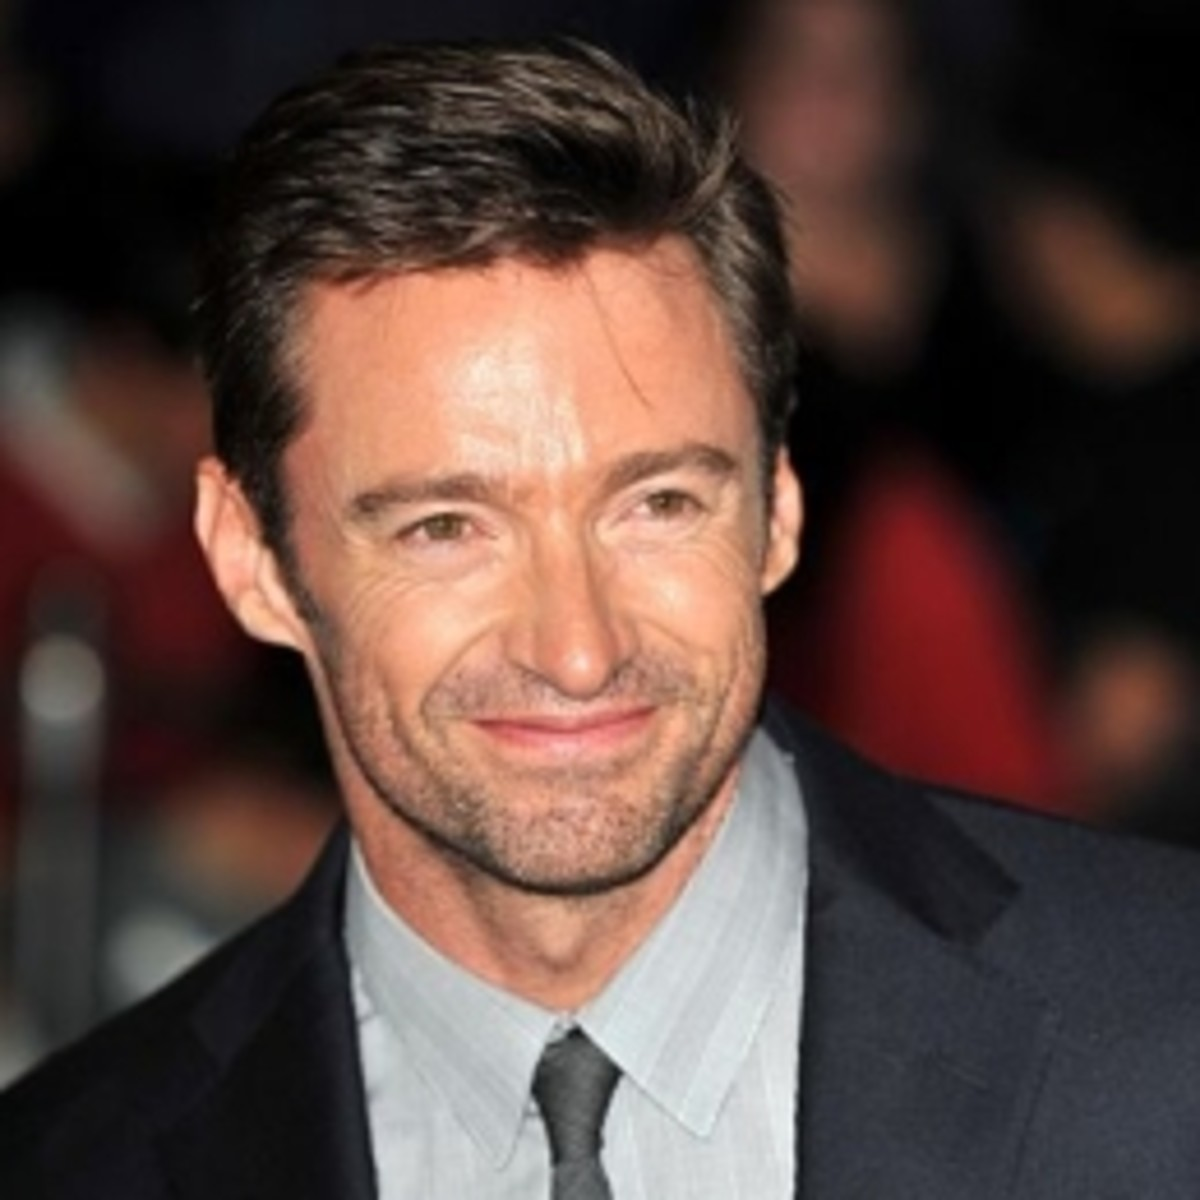 Hugh Jackman, married since 1996